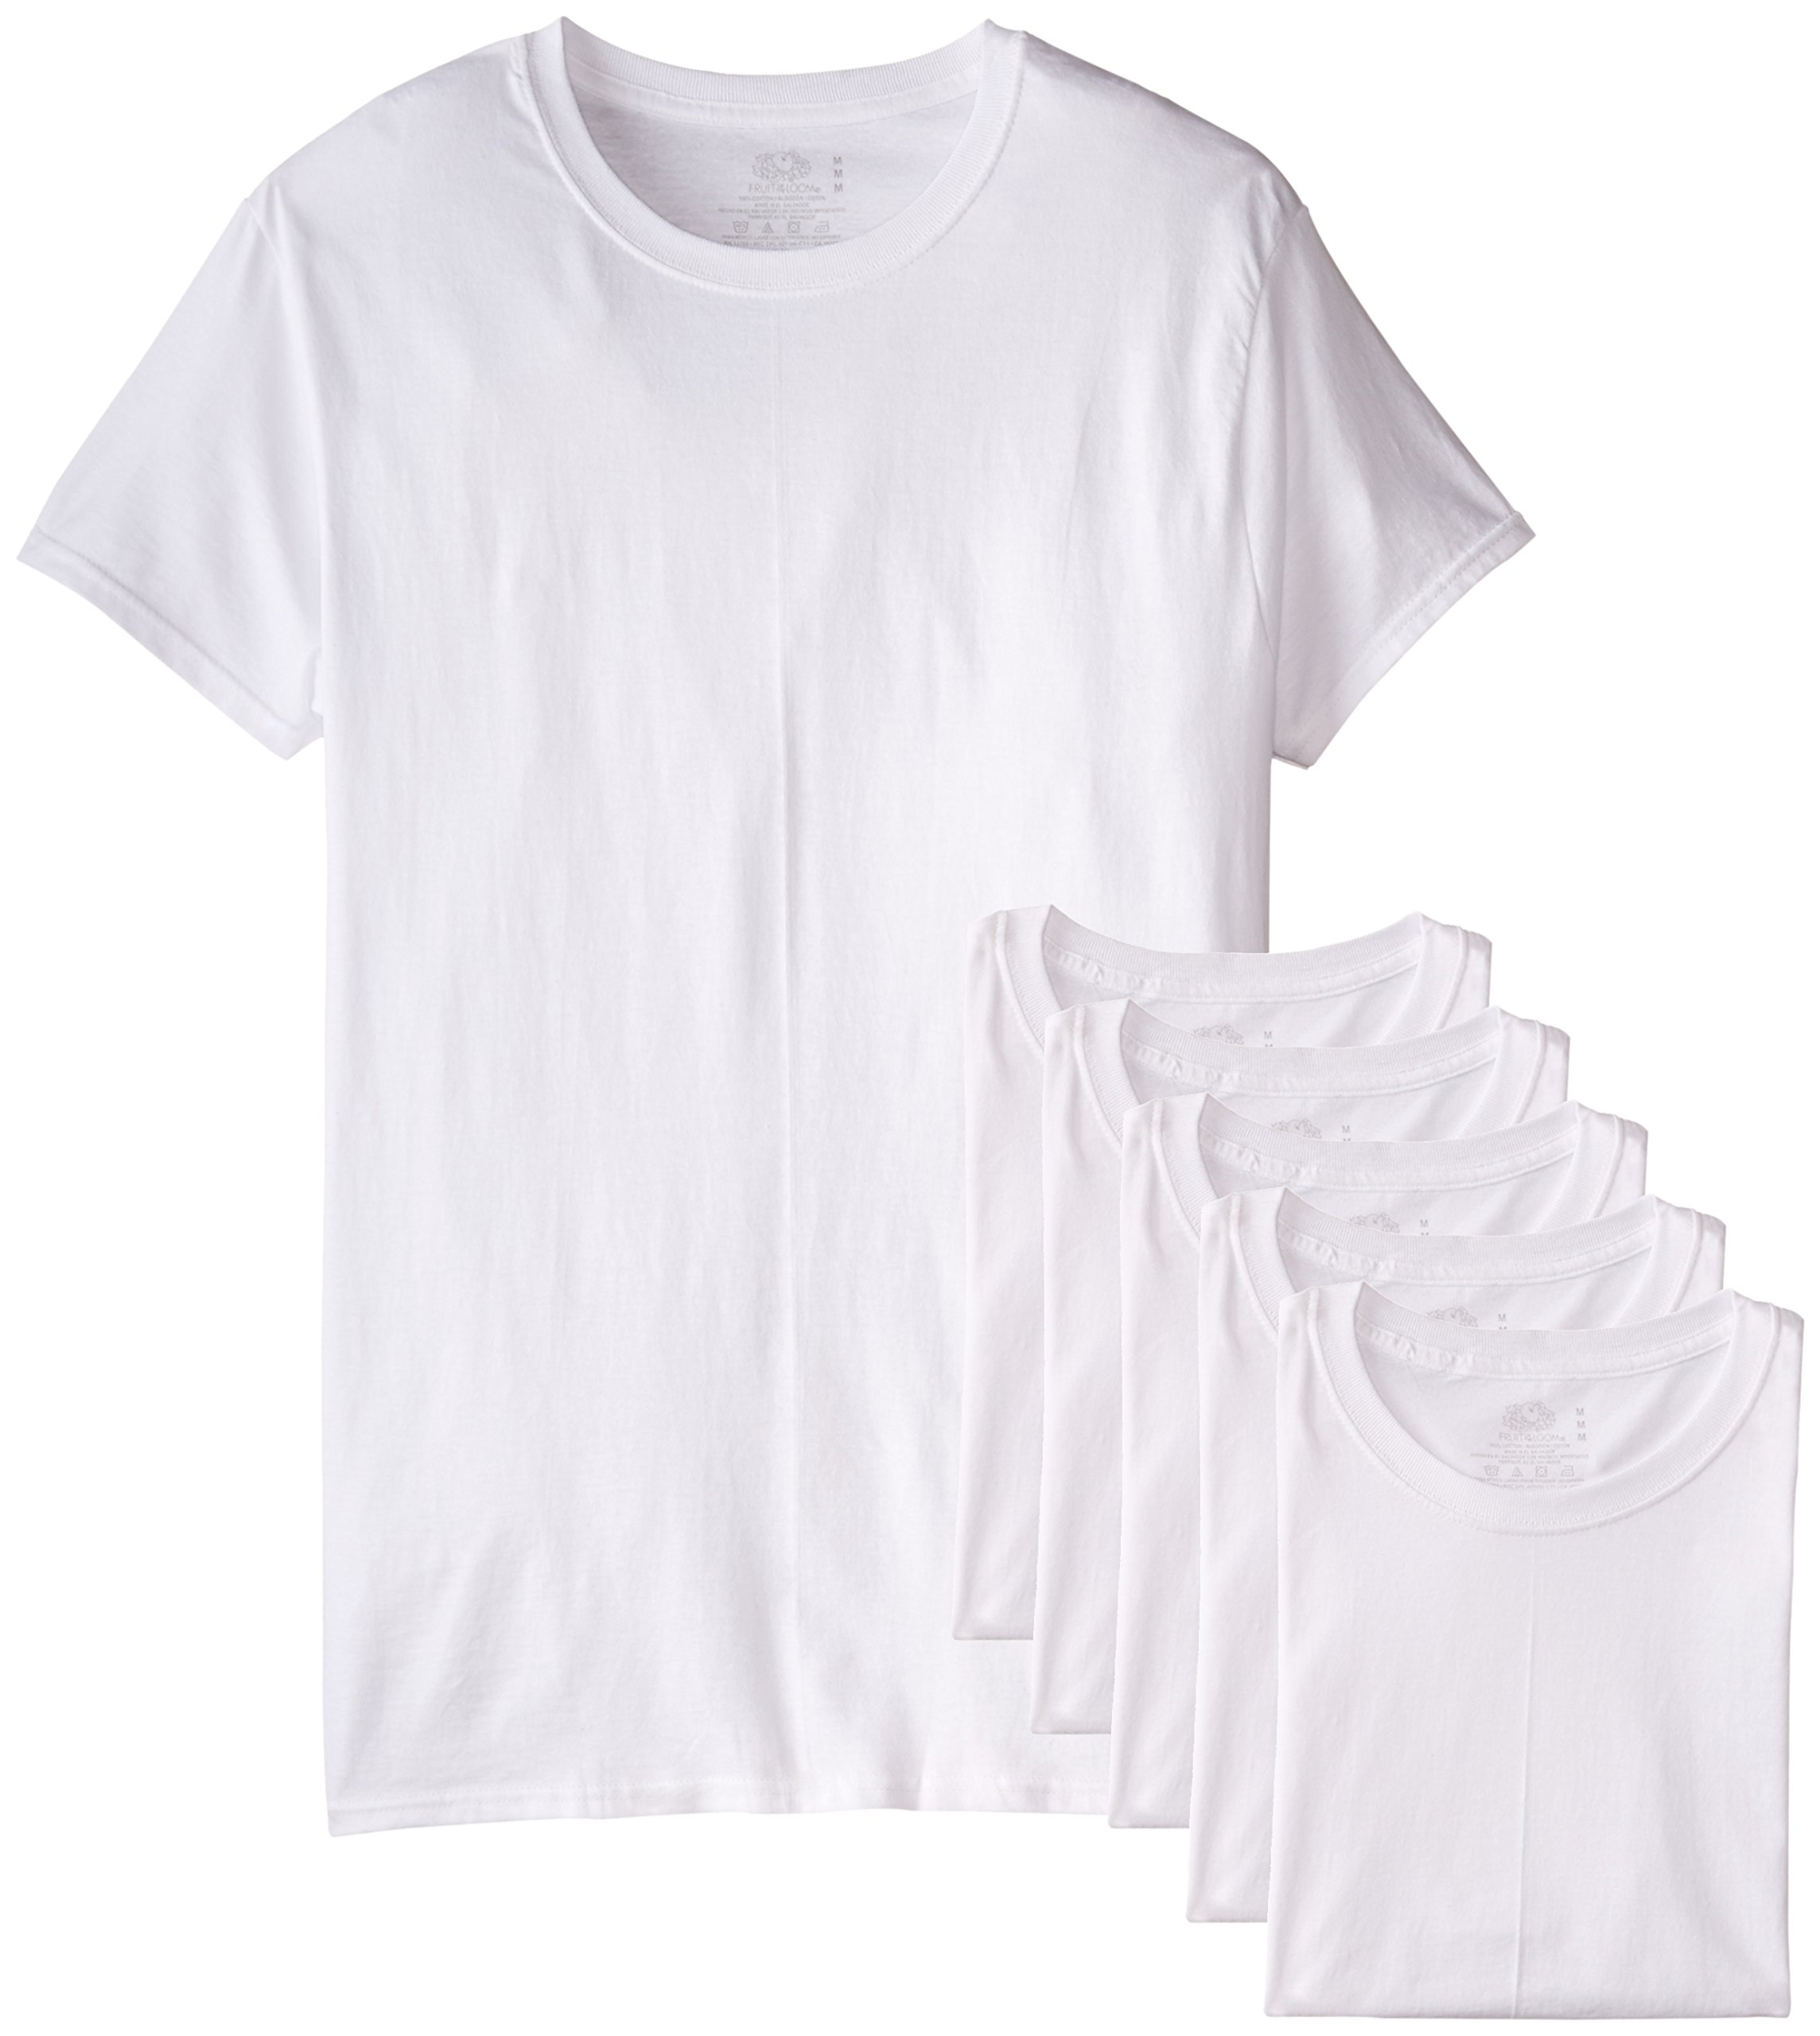 Fruit of the Loom Men's Stay Tucked Crew T-Shirt - Large - White (Pack of 6) by Fruit of the Loom